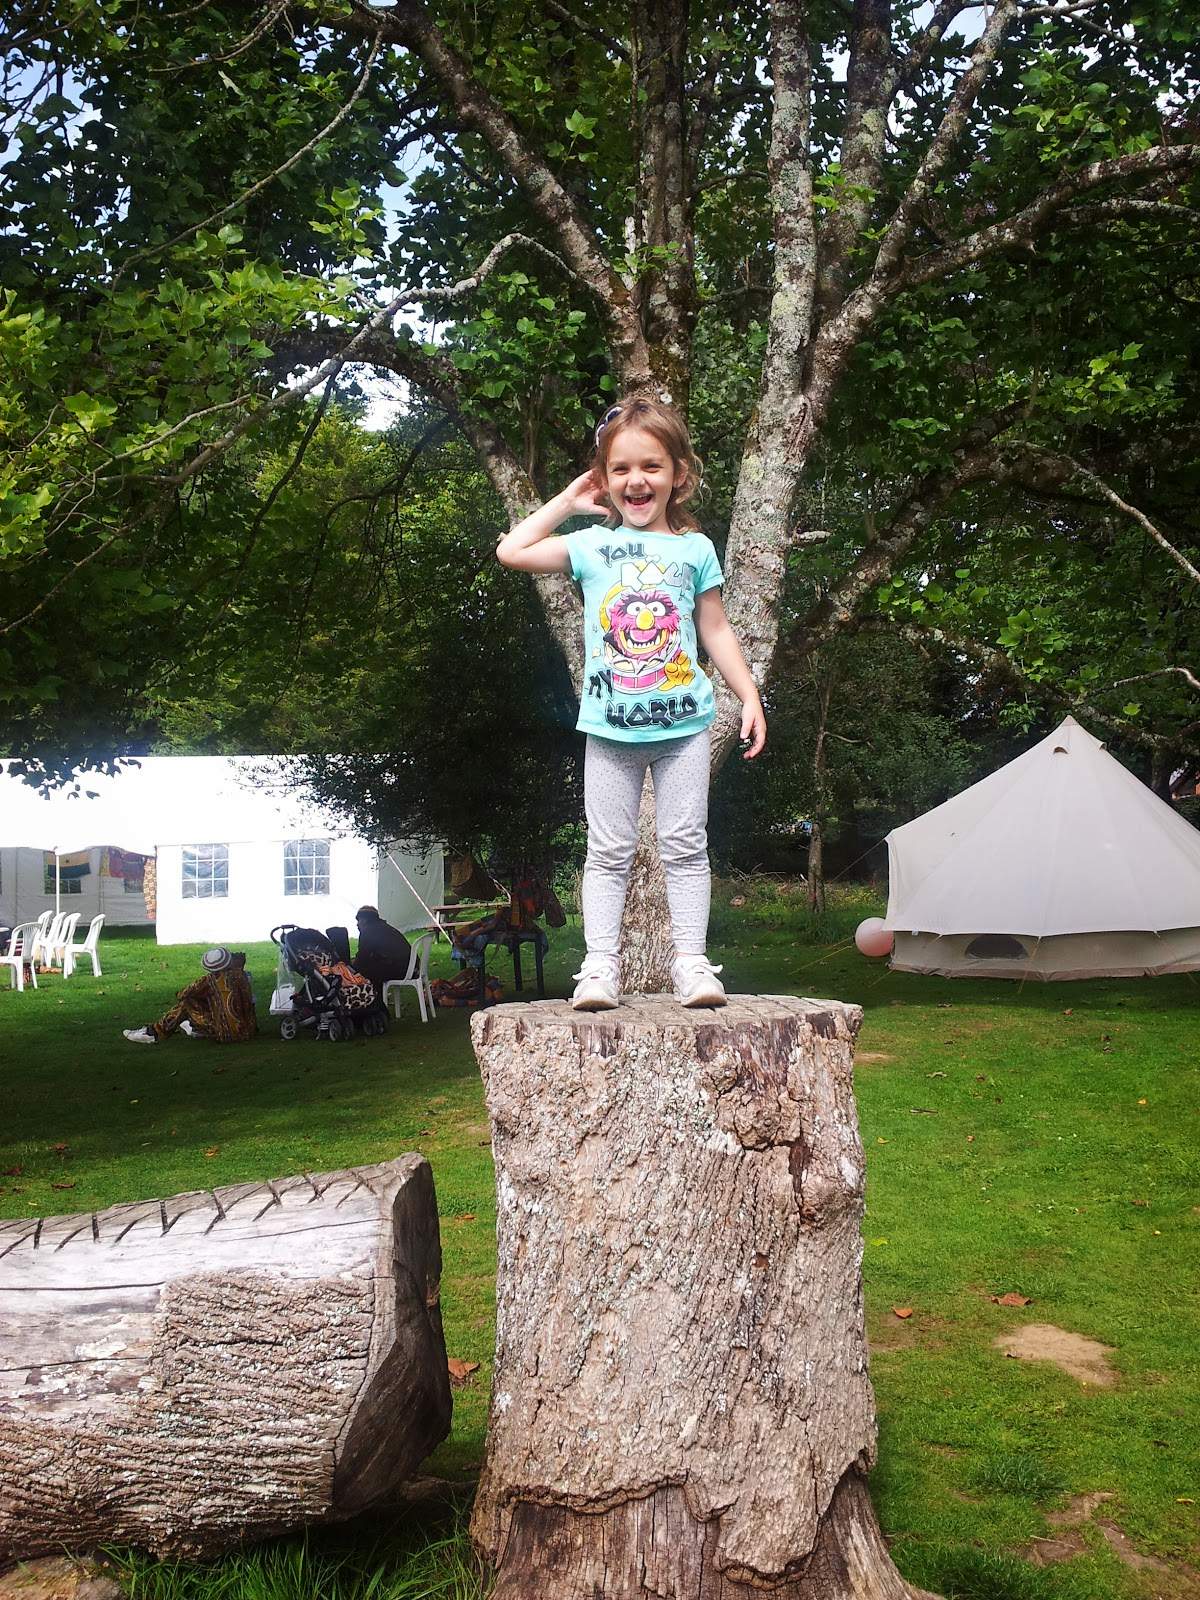 , Chiami at Manor Park 2013 #CountryKids